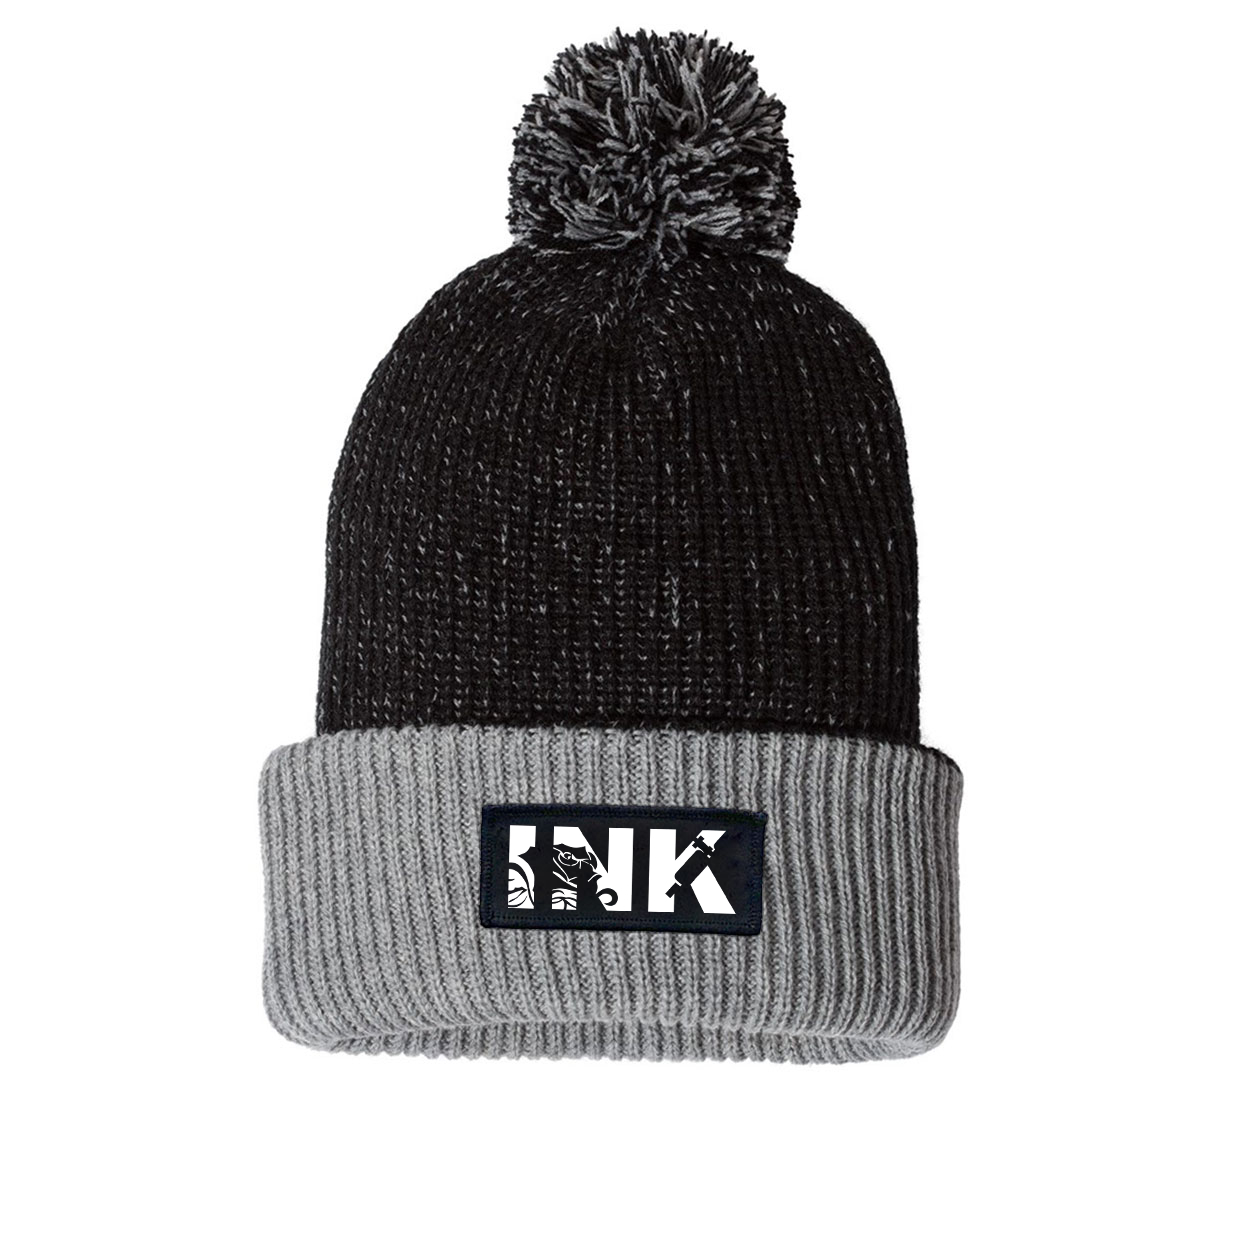 Ink Tattoo Logo Night Out Woven Patch Roll Up Pom Knit Beanie Black/Gray (White Logo)